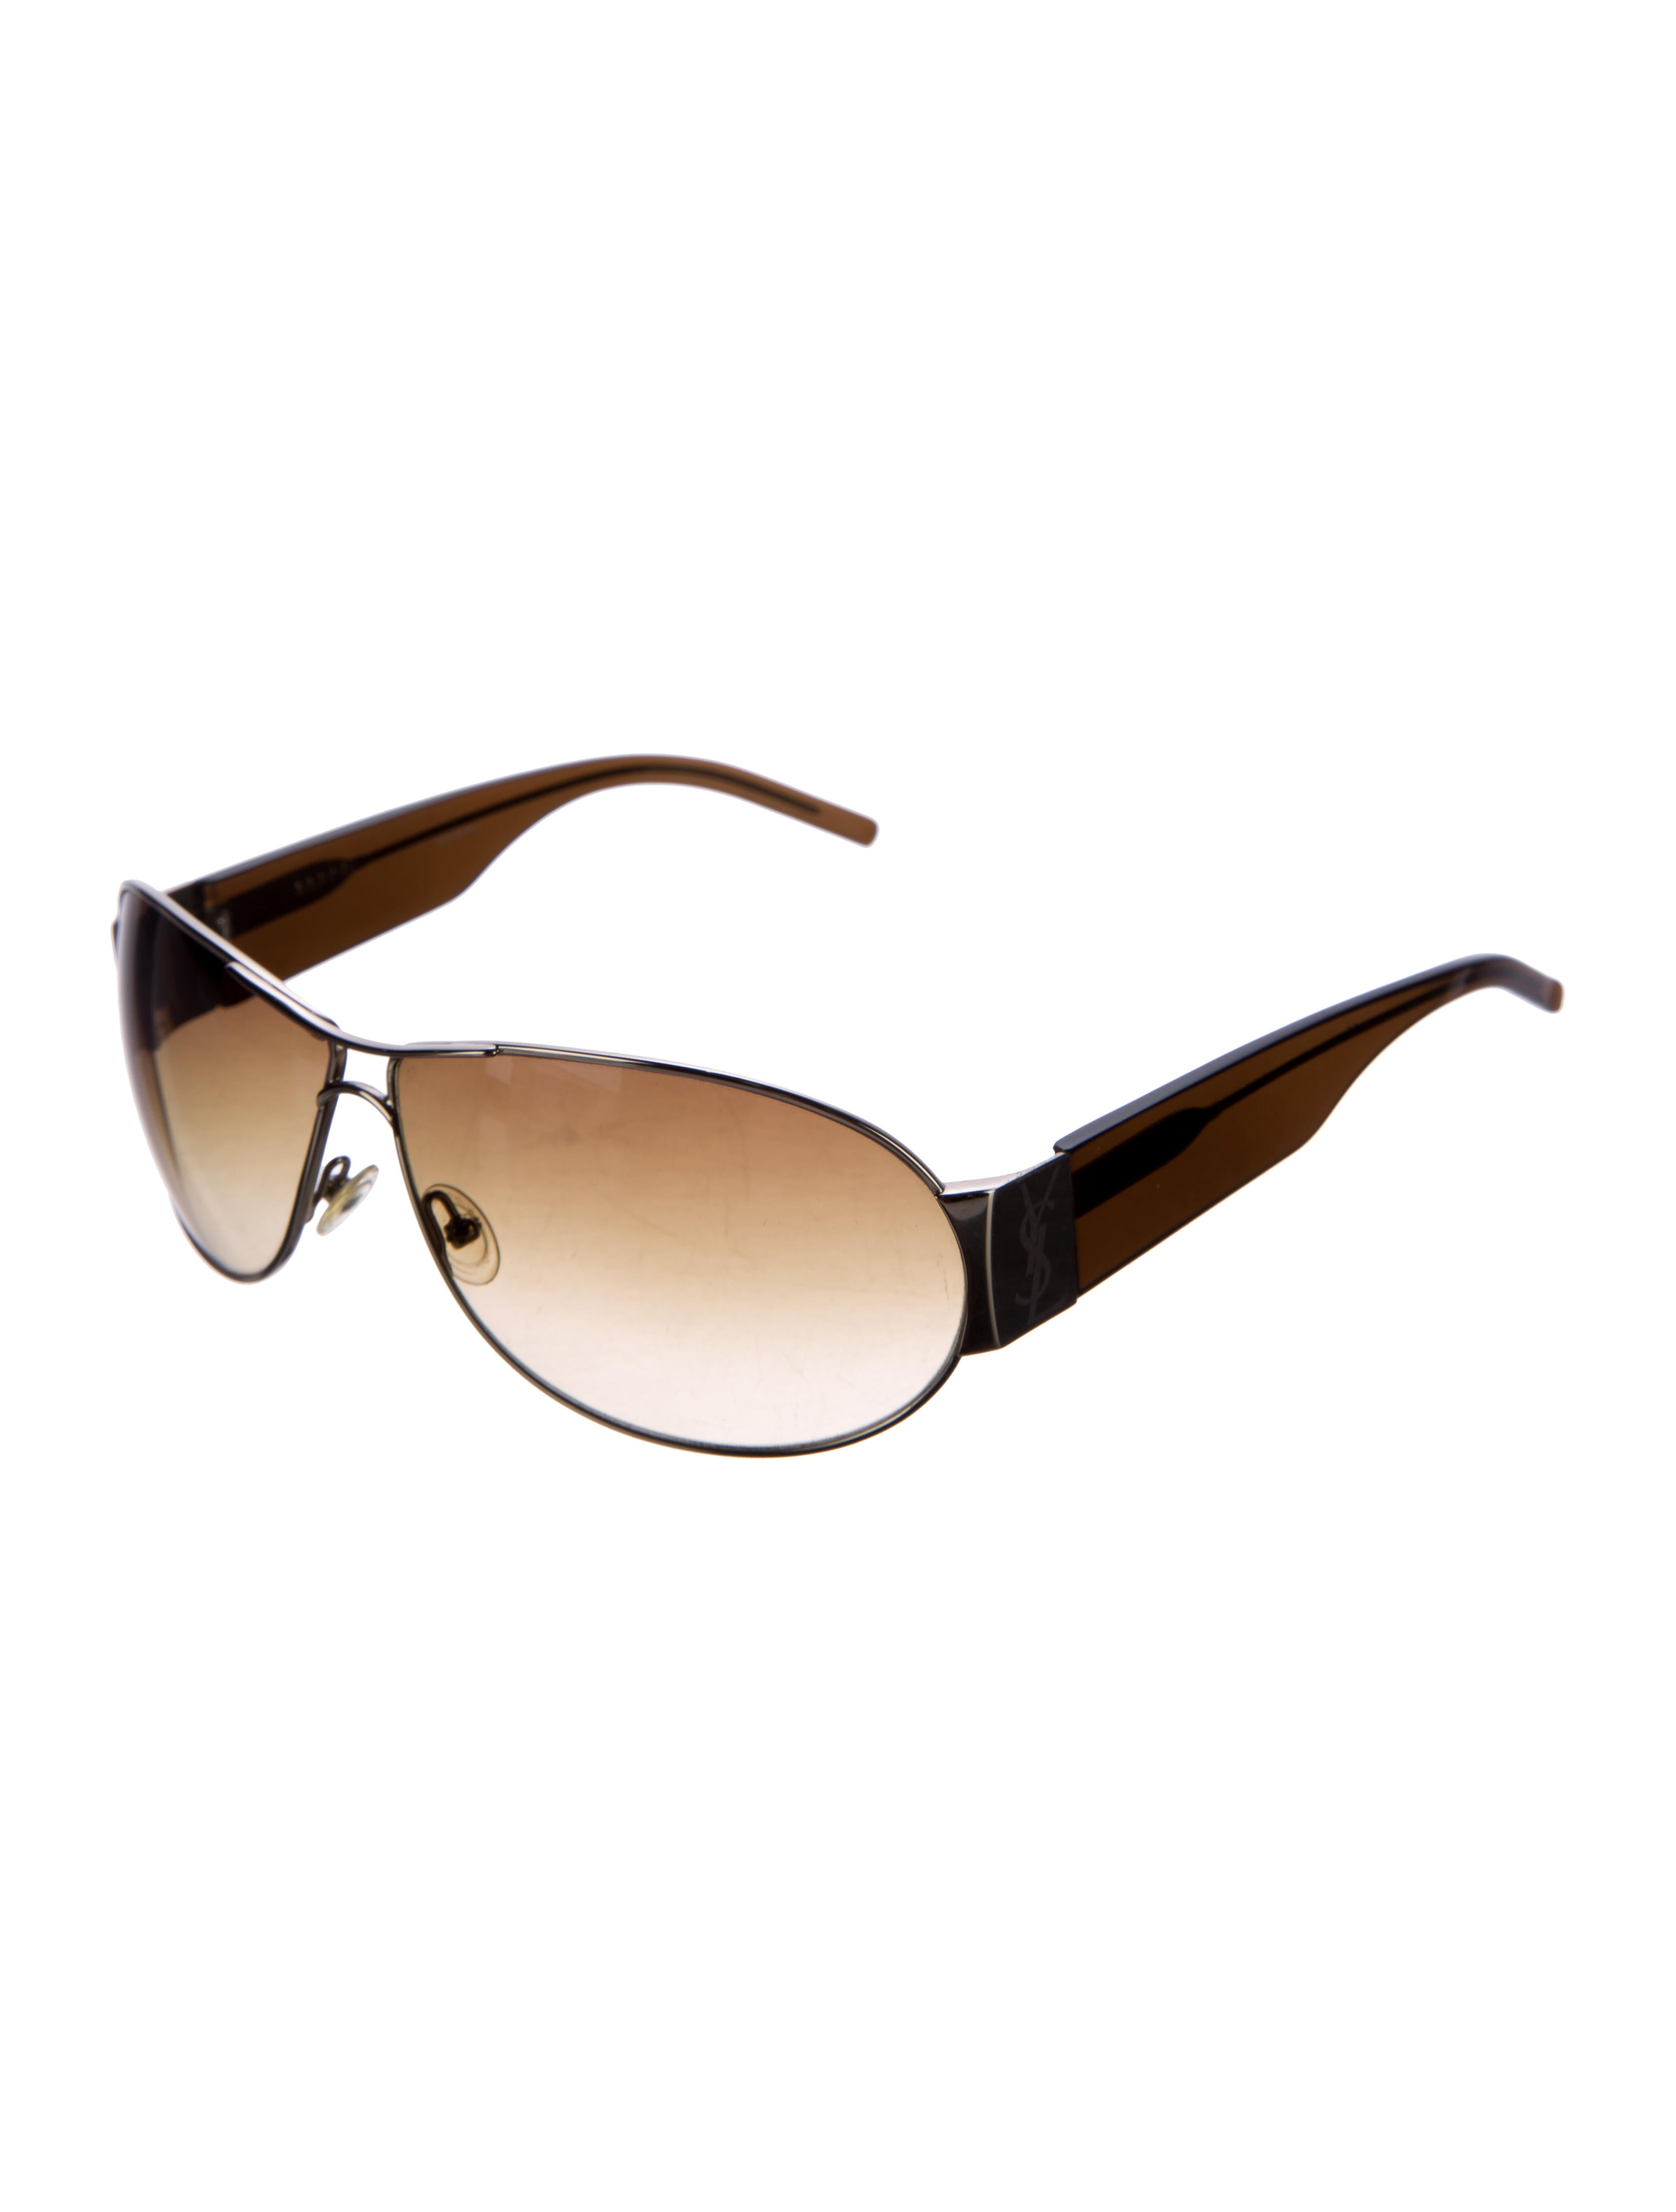 6e41a5b5cd Yves Saint Laurent Gradient Aviator Sunglasses - Accessories - YVE60602